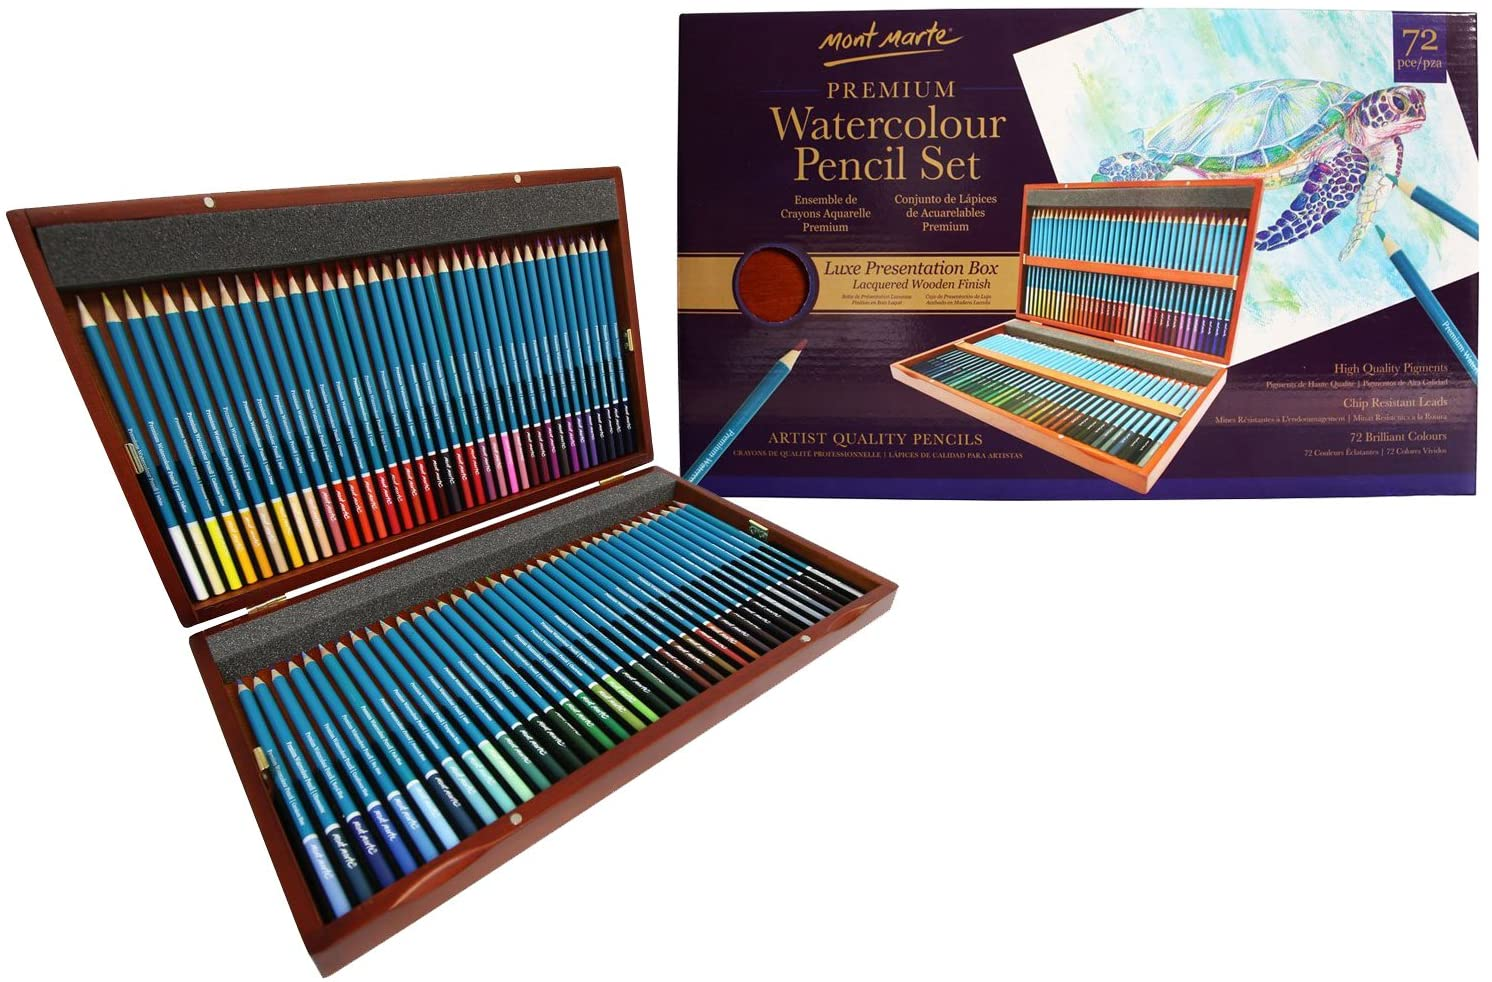 MONT MARTE Watercolour Pencils Set Deluxe - 72 pieces of Watercolour Pencils in a Classy Wooden Box